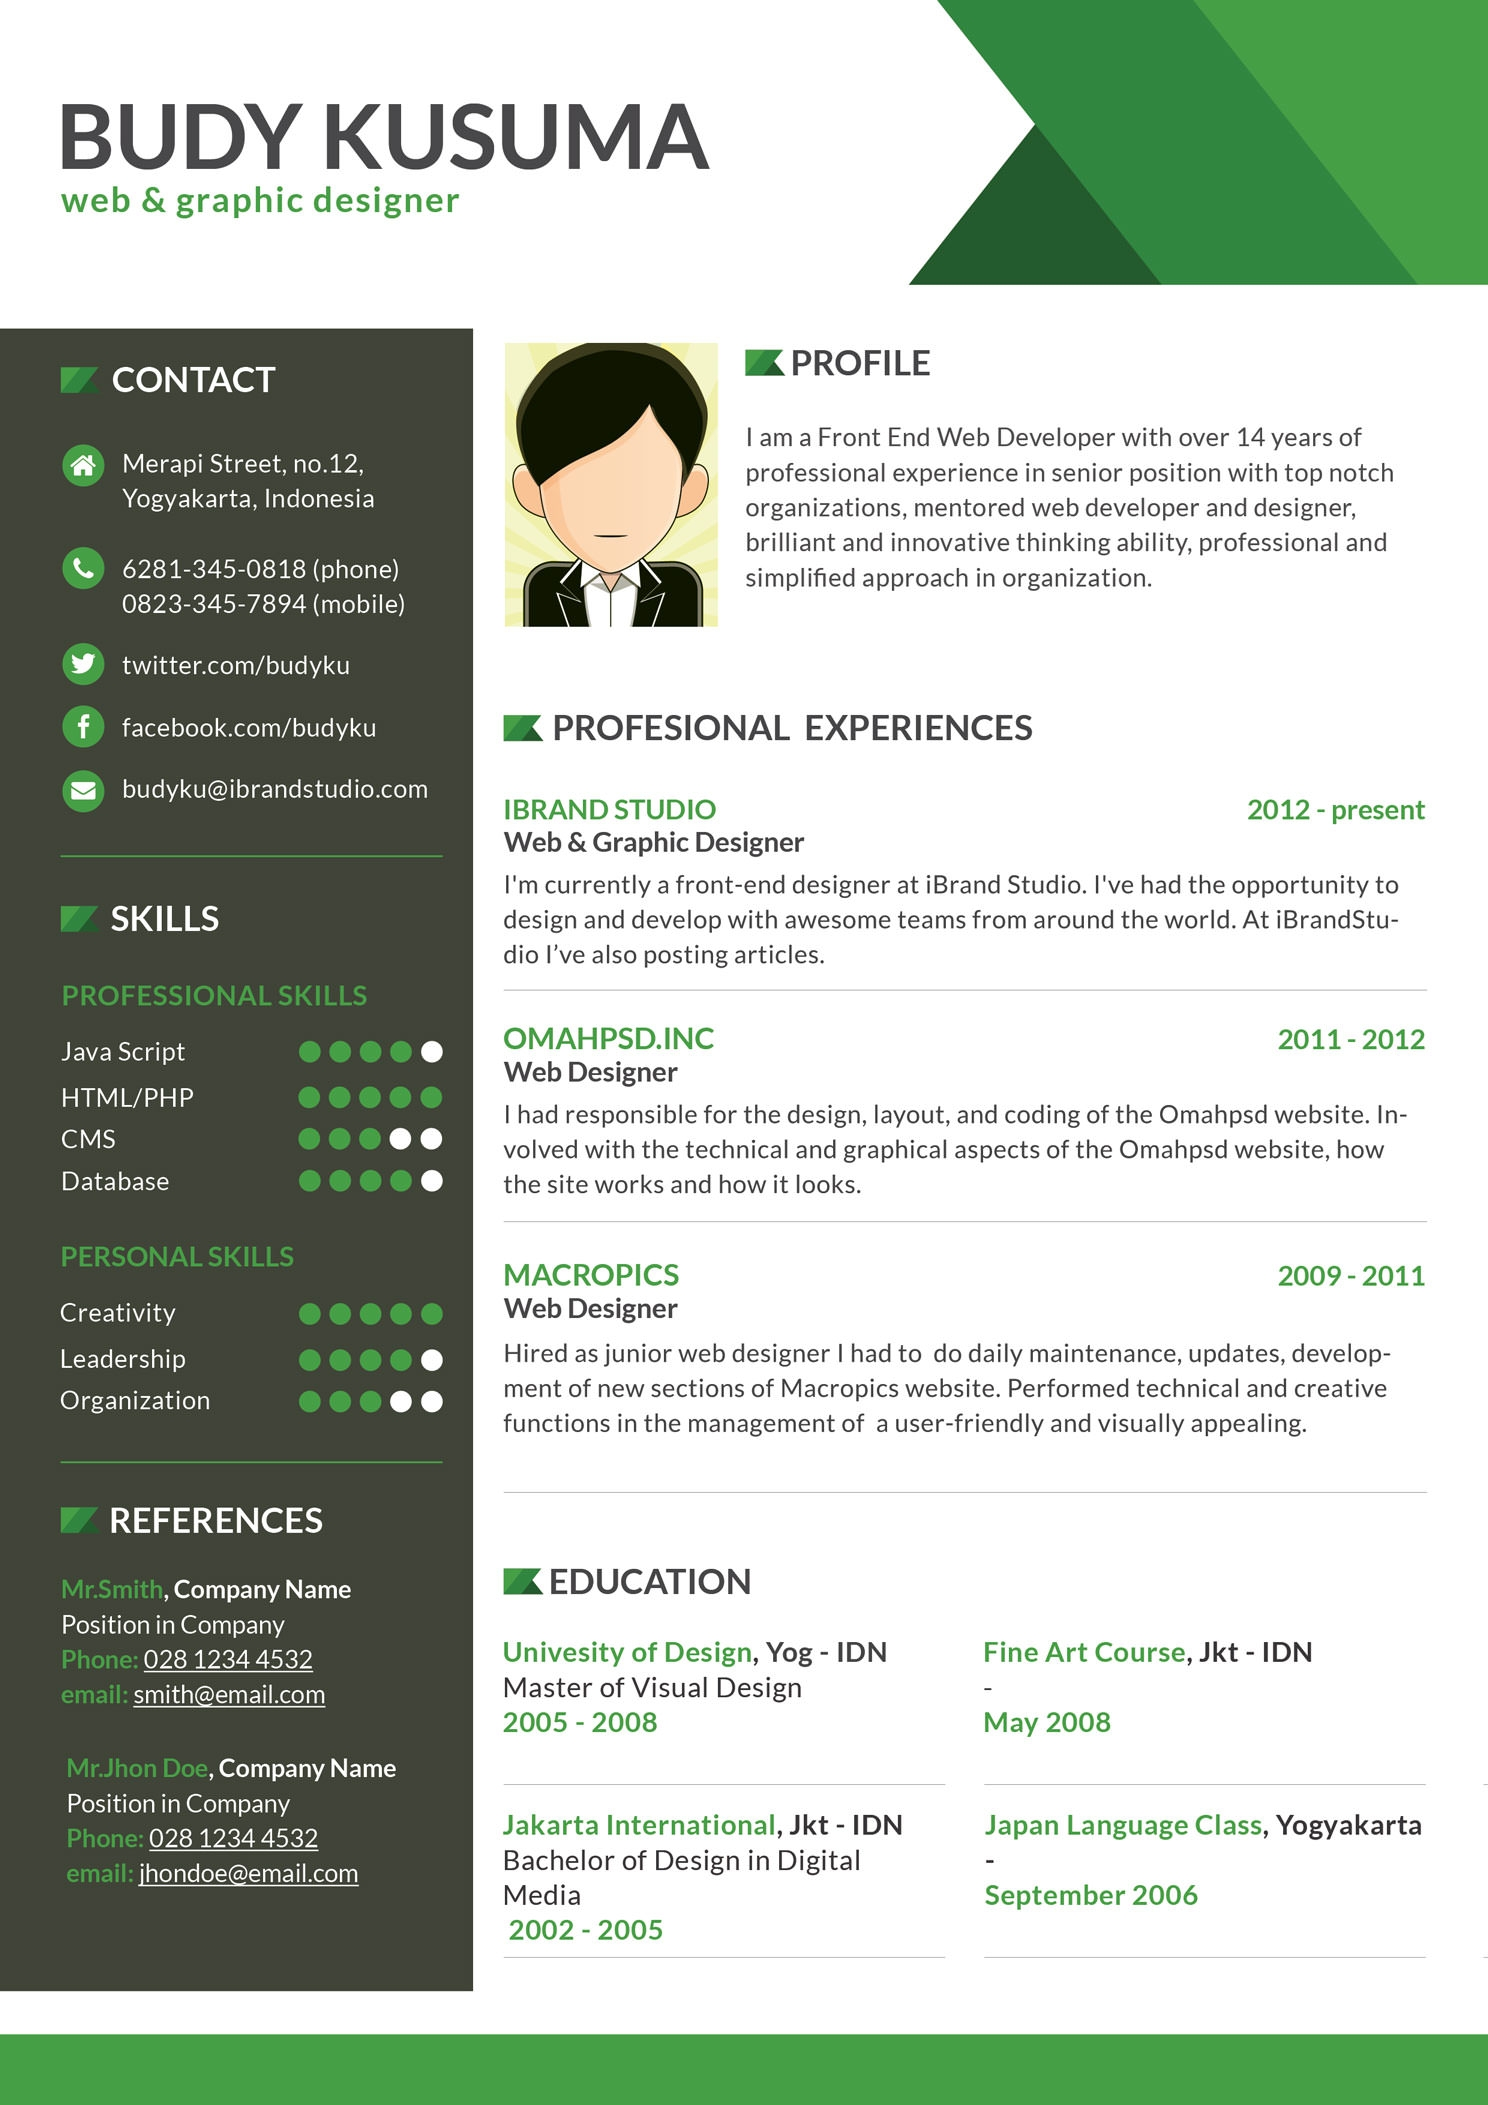 flasher resume template green download button 171211112111121